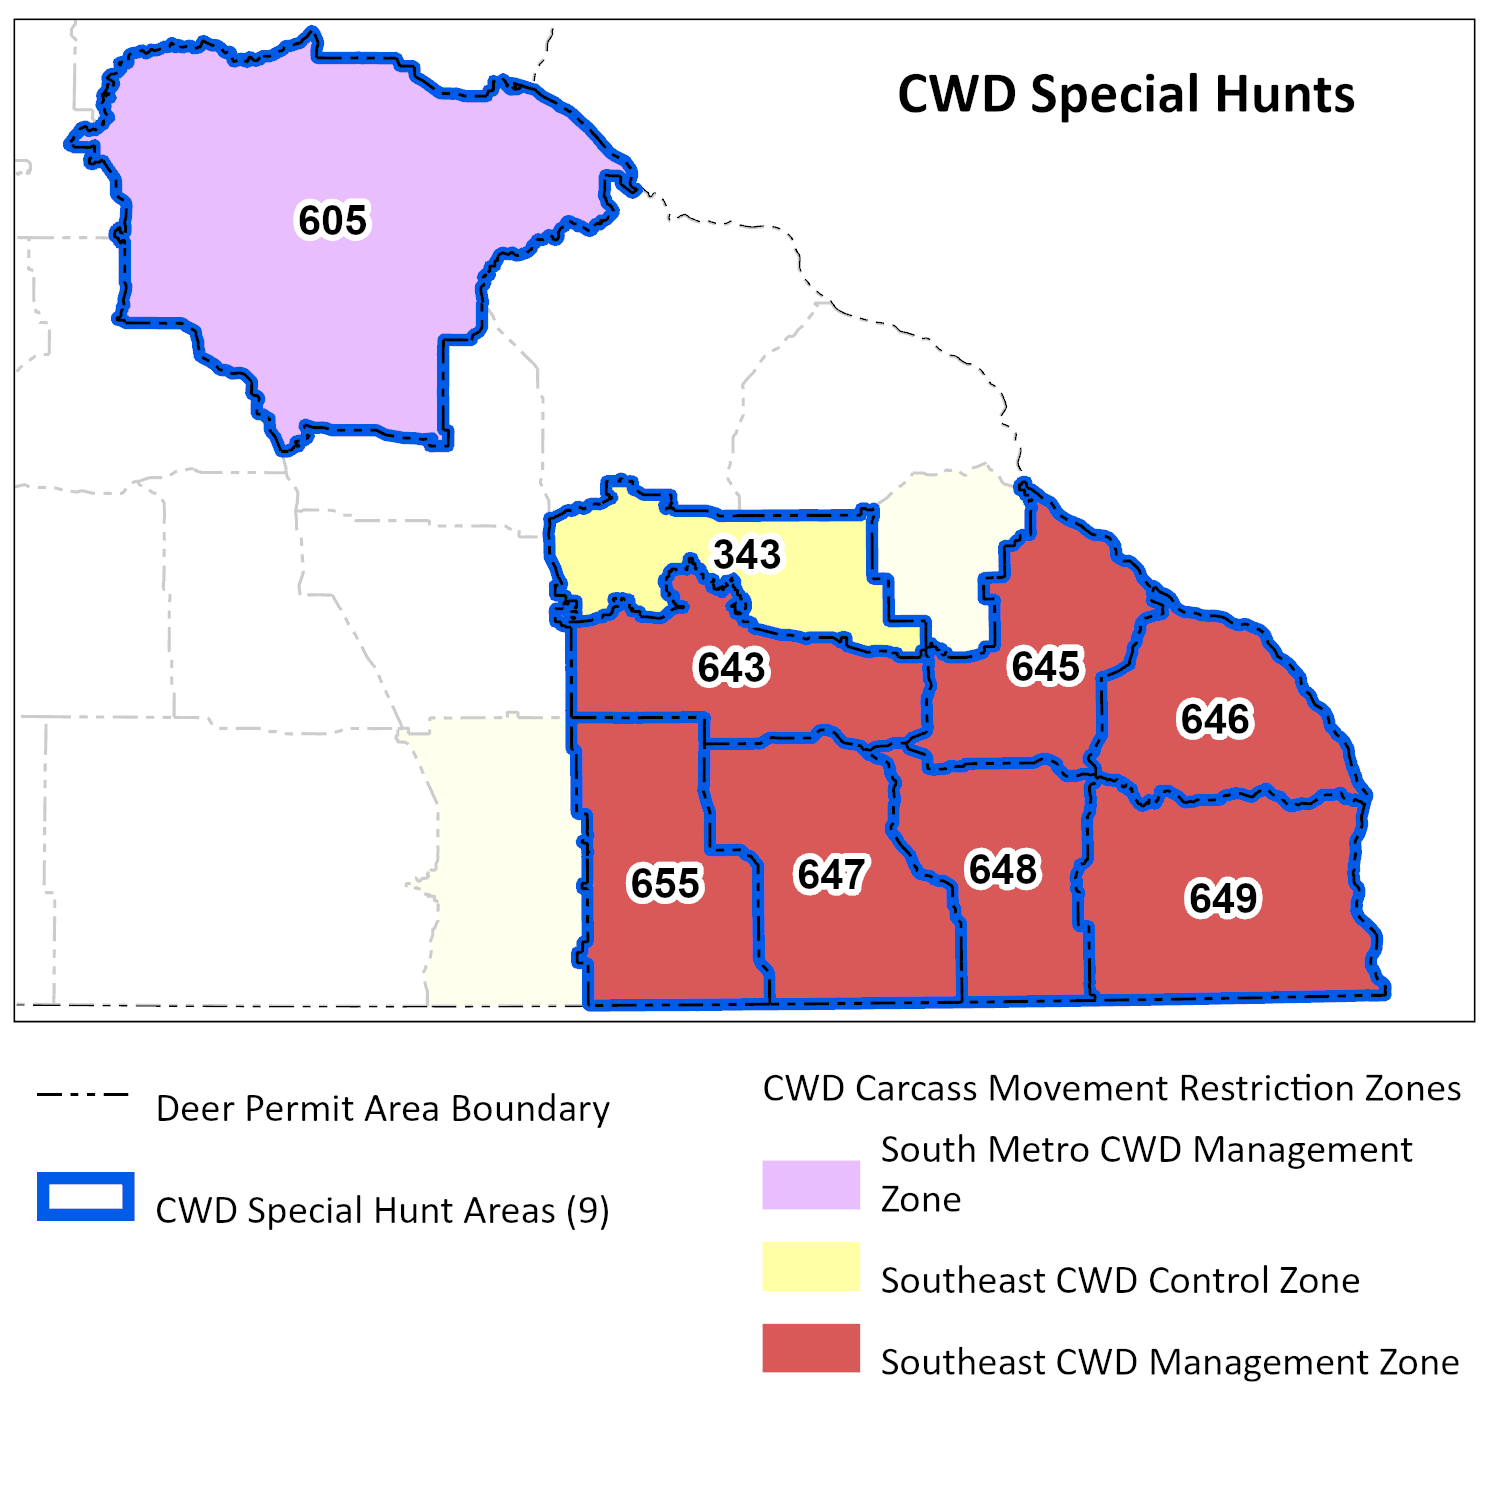 Map highlighting the DPAs included in the special hunts in SE Minnesota: 643, 646, 647, 648.